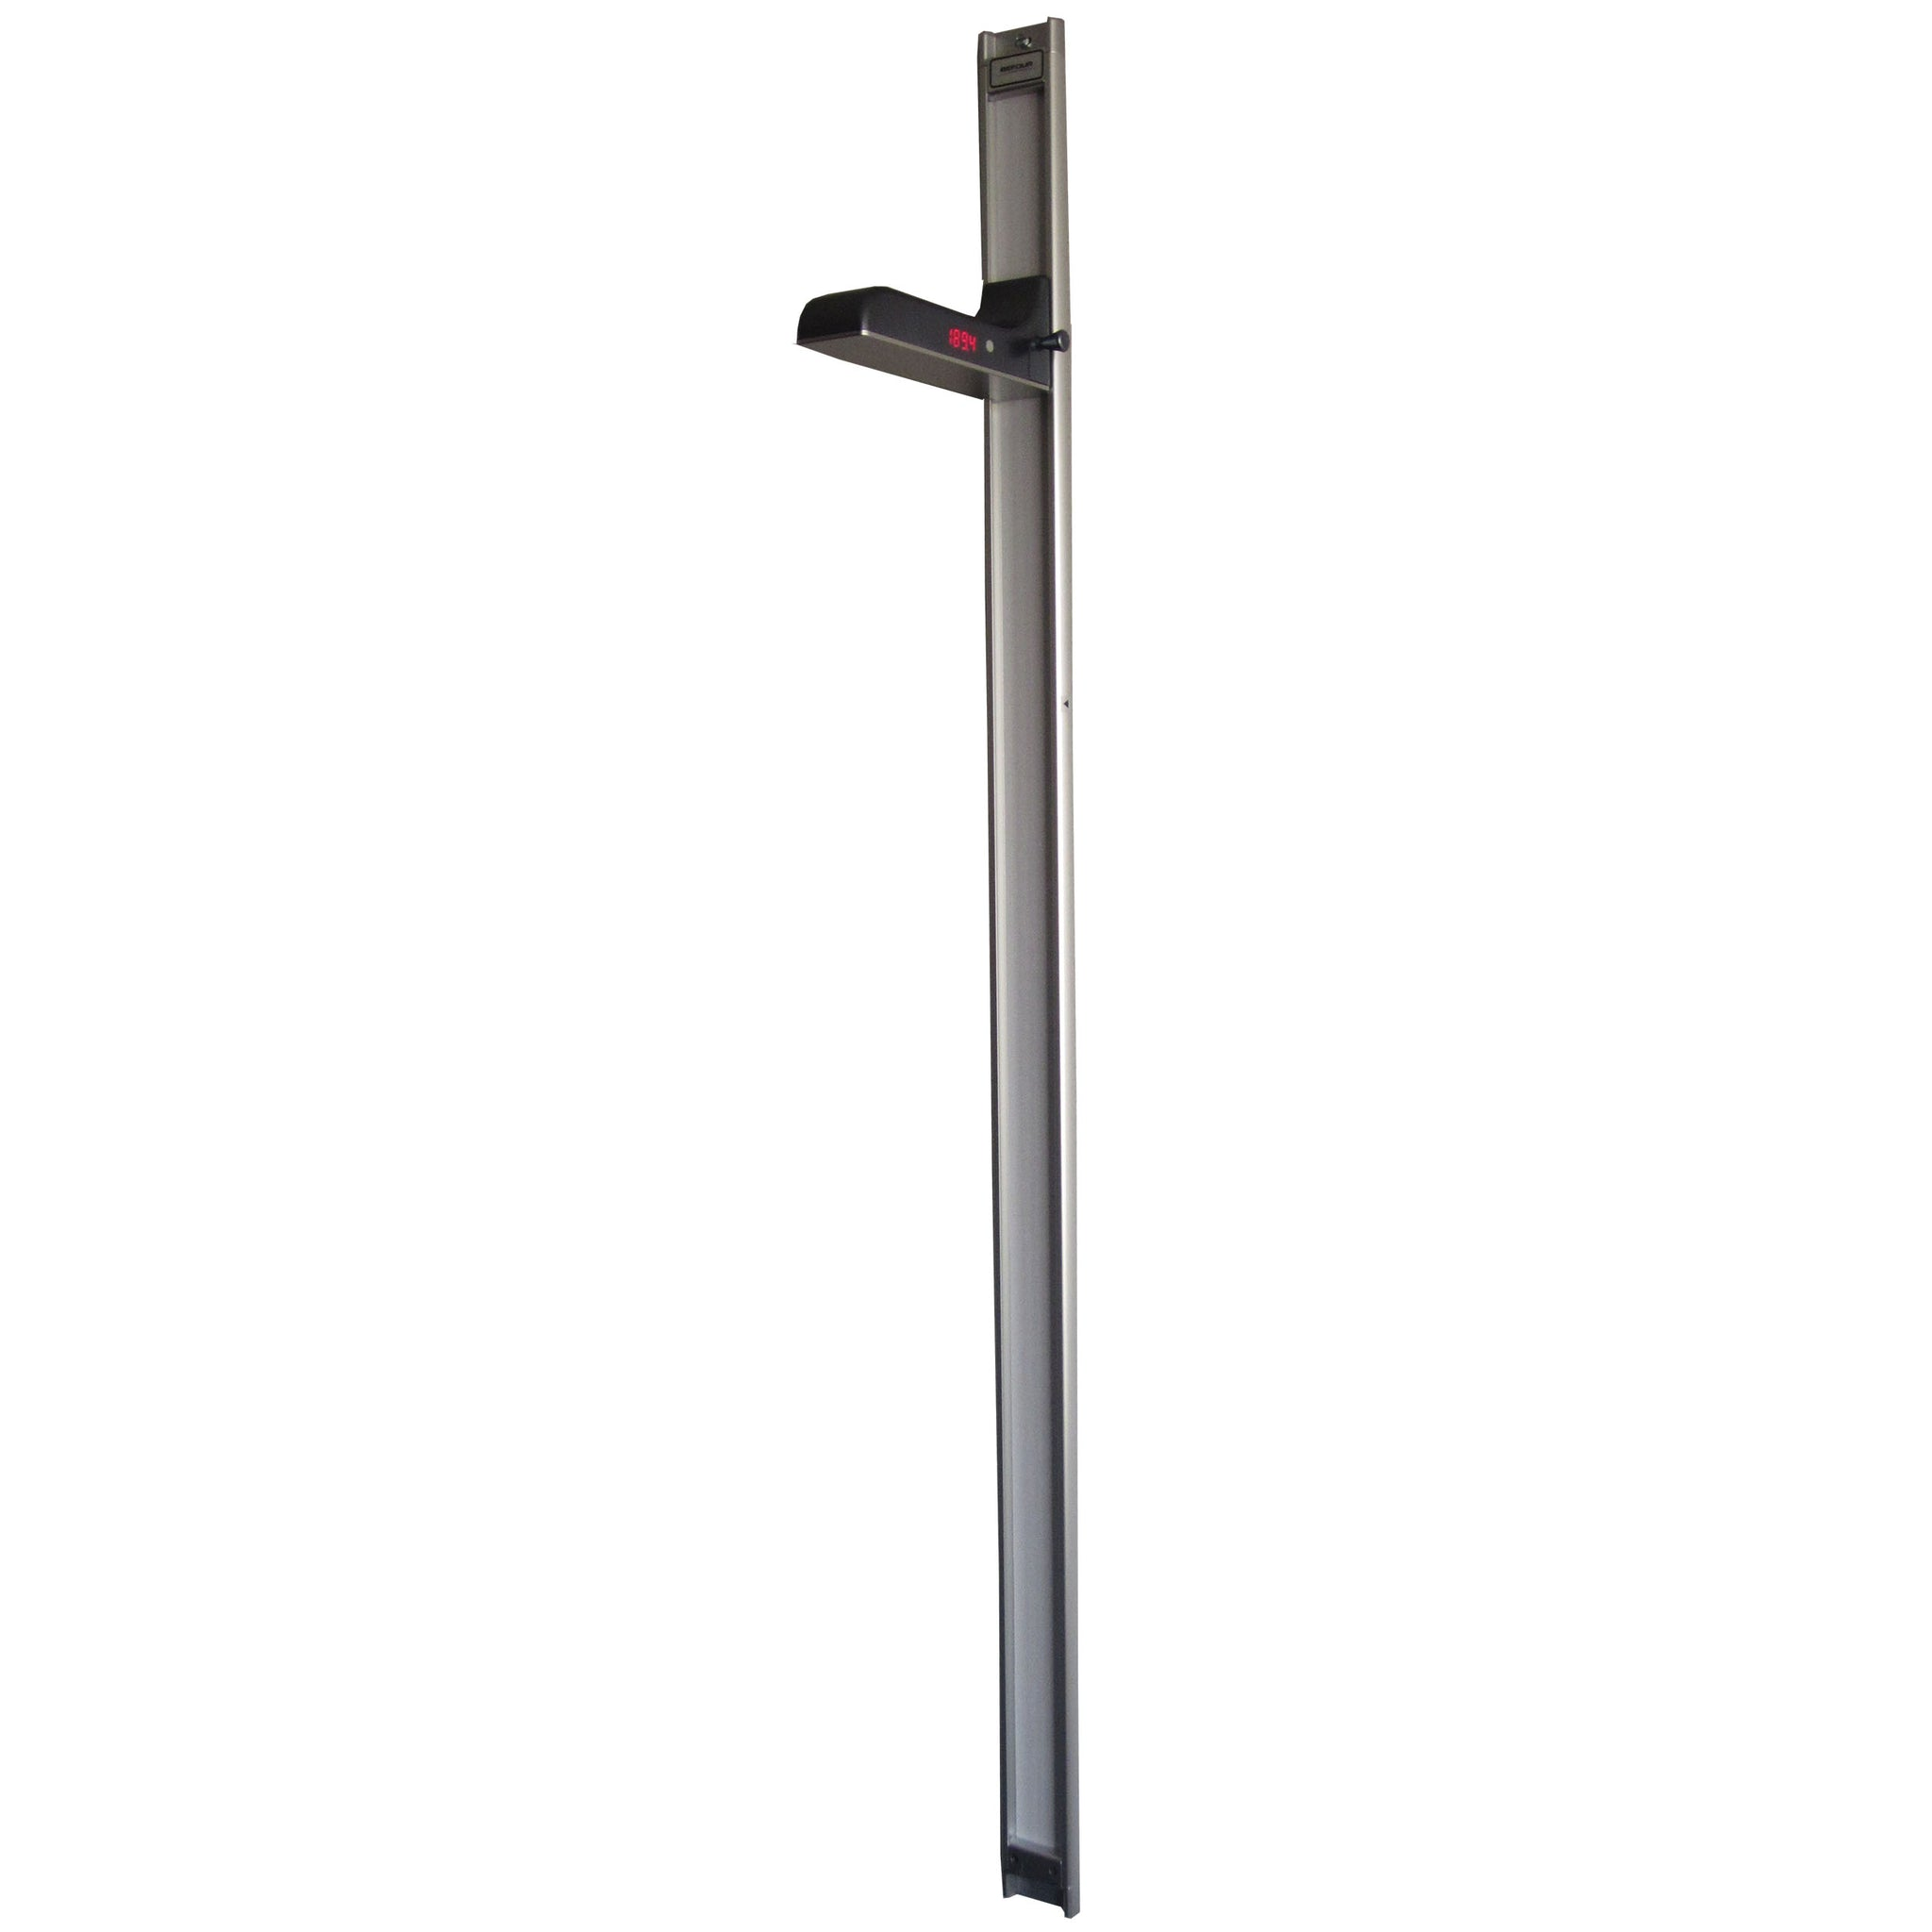 Befour HTR-101 Wall Mounted Digital Height Rod